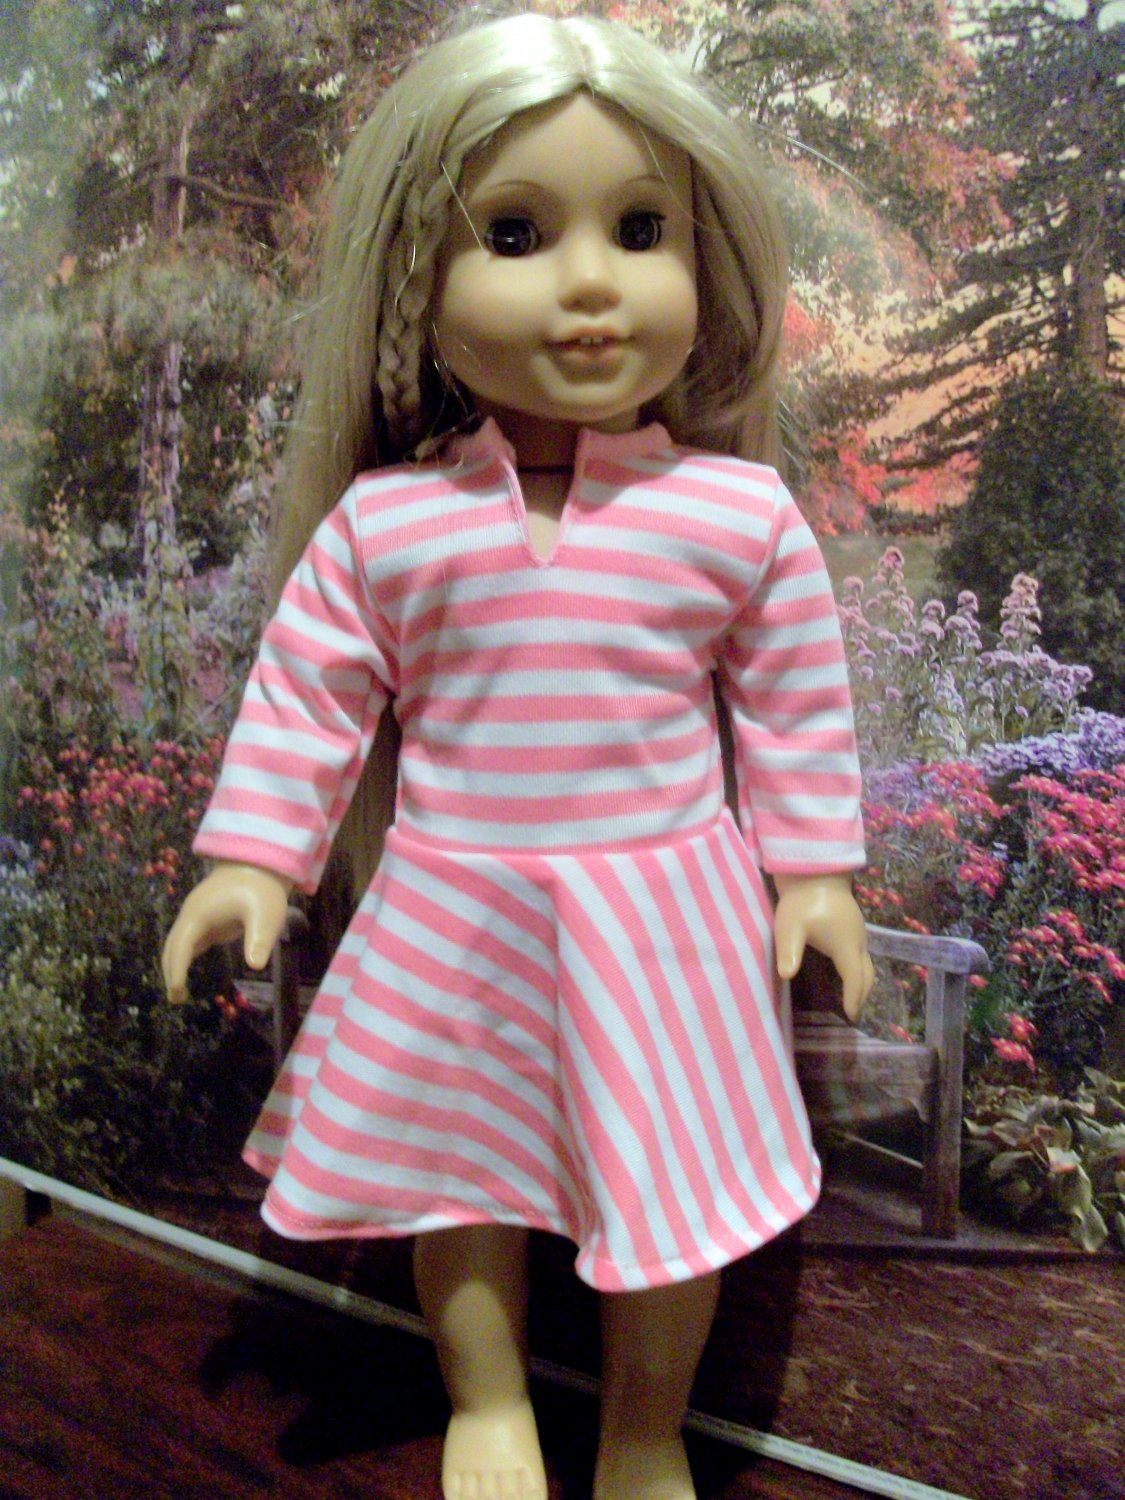 Pink Striped Rugby Style Dress for American Girl dolls